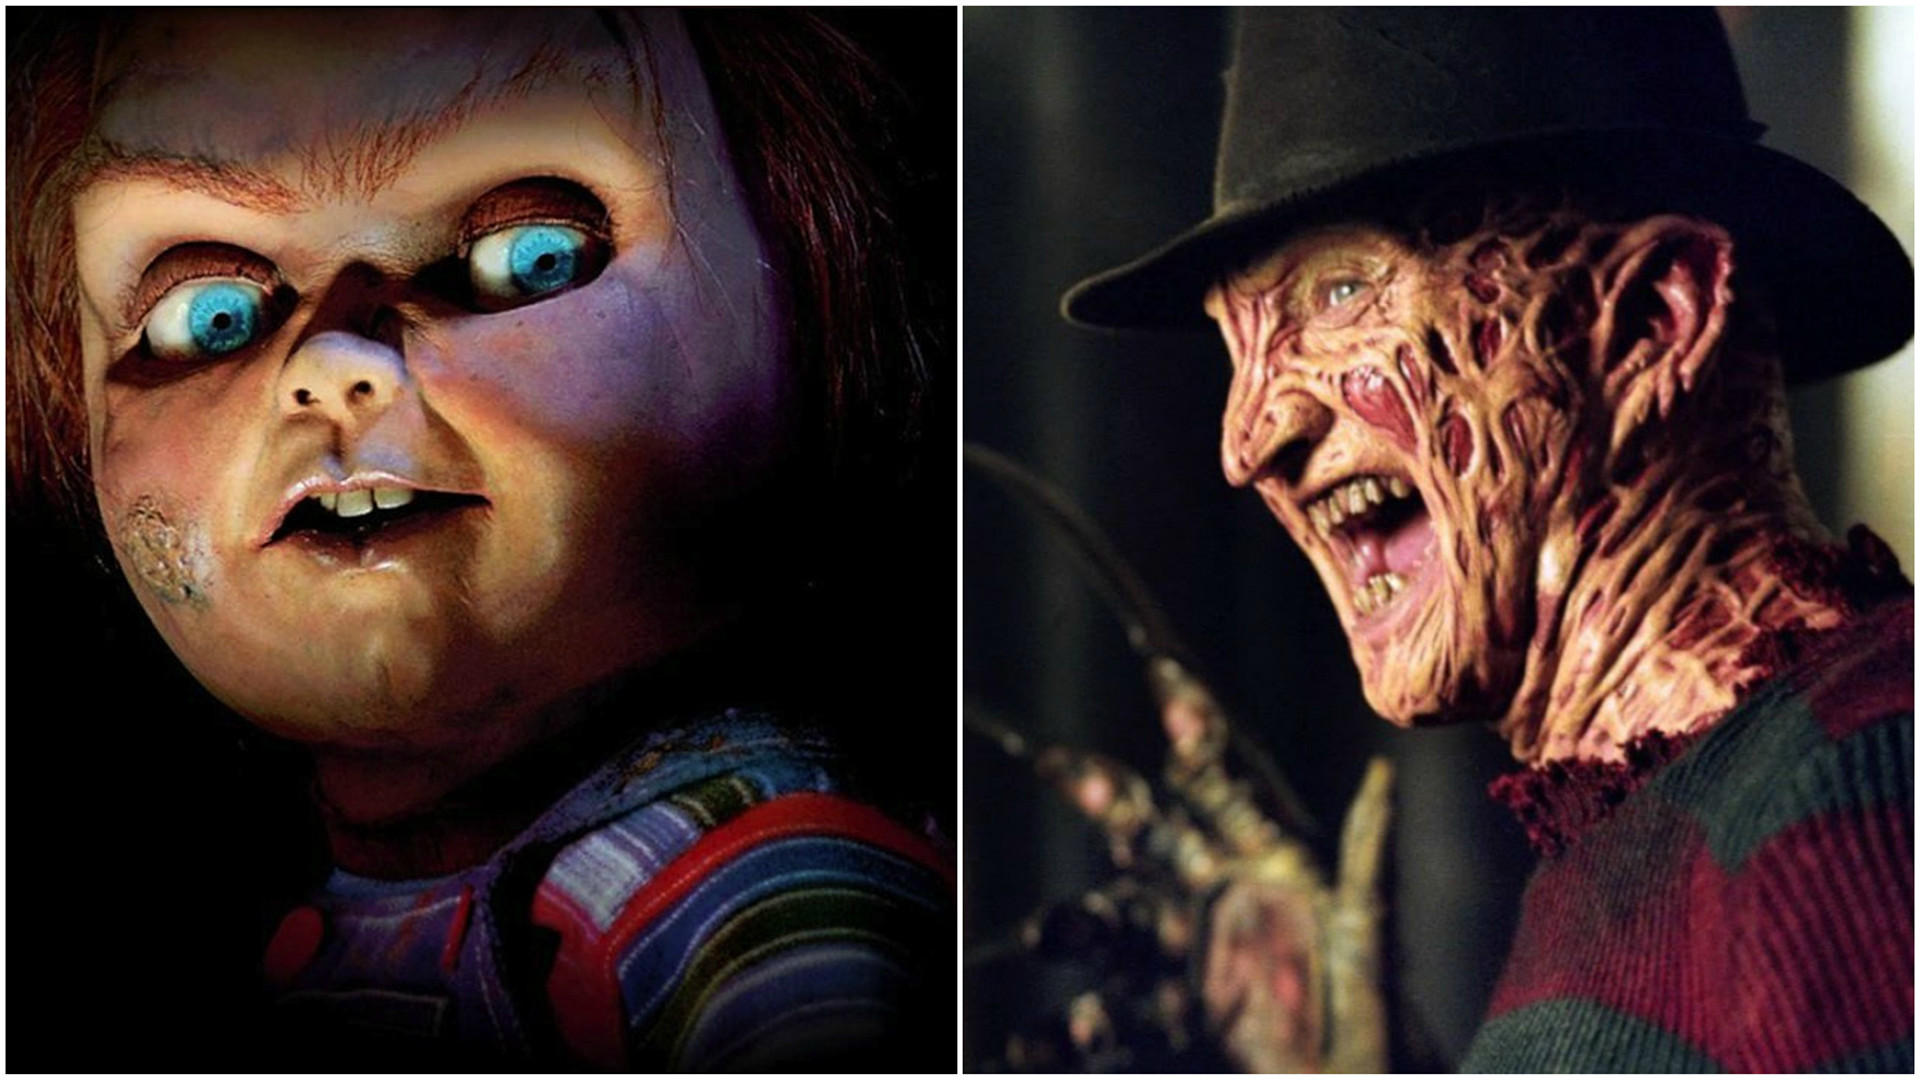 1920x1080 ... been given more opportunities to extend his signature franchise than  Child's Play creator Don Mancini. He recently wrote and directed Cult of  Chucky, ...